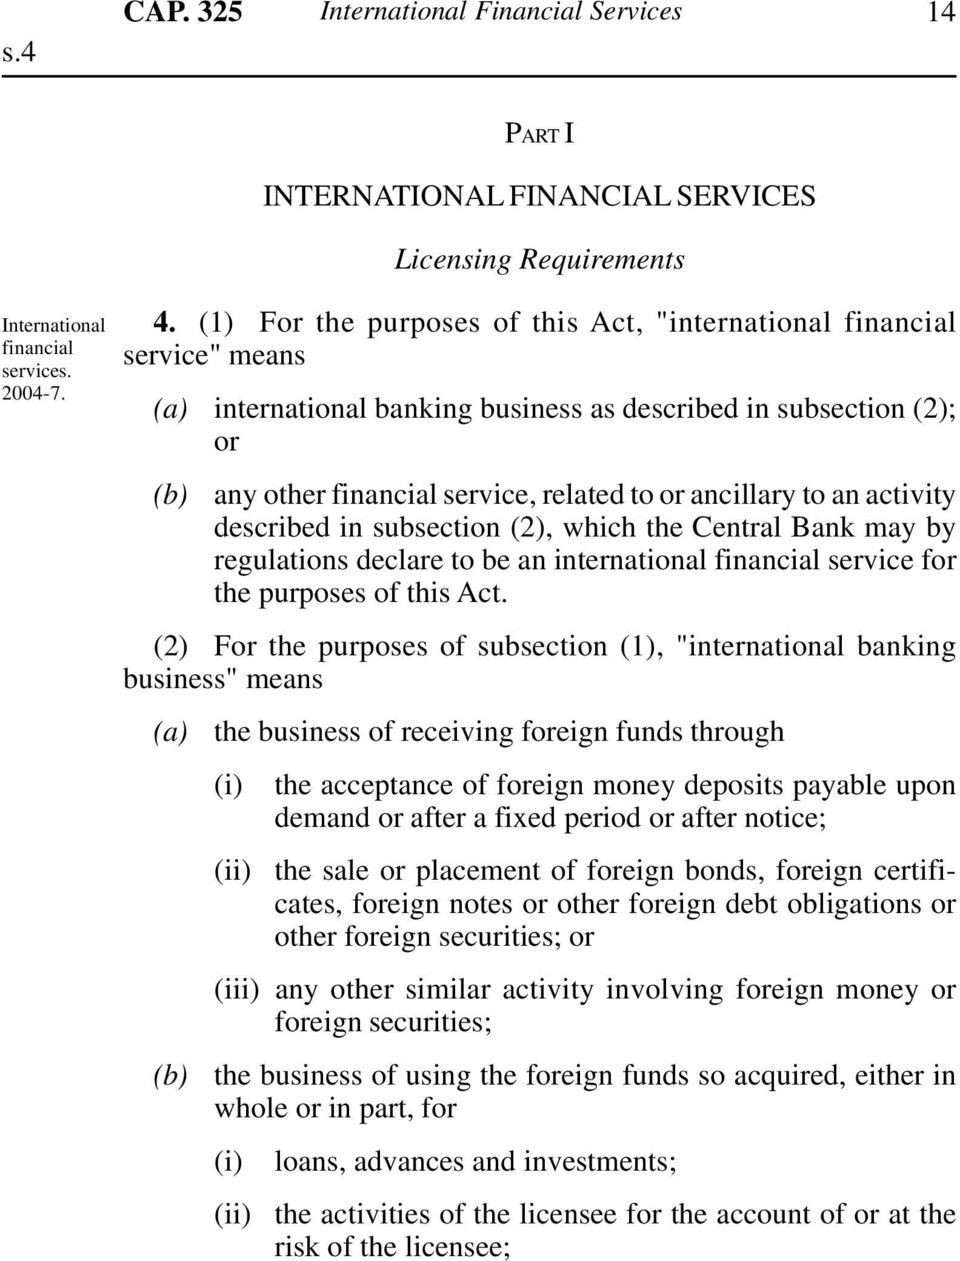 activity described in subsection (2), which the Central Bank may by regulations declare to be an international financial service for the purposes of this Act.